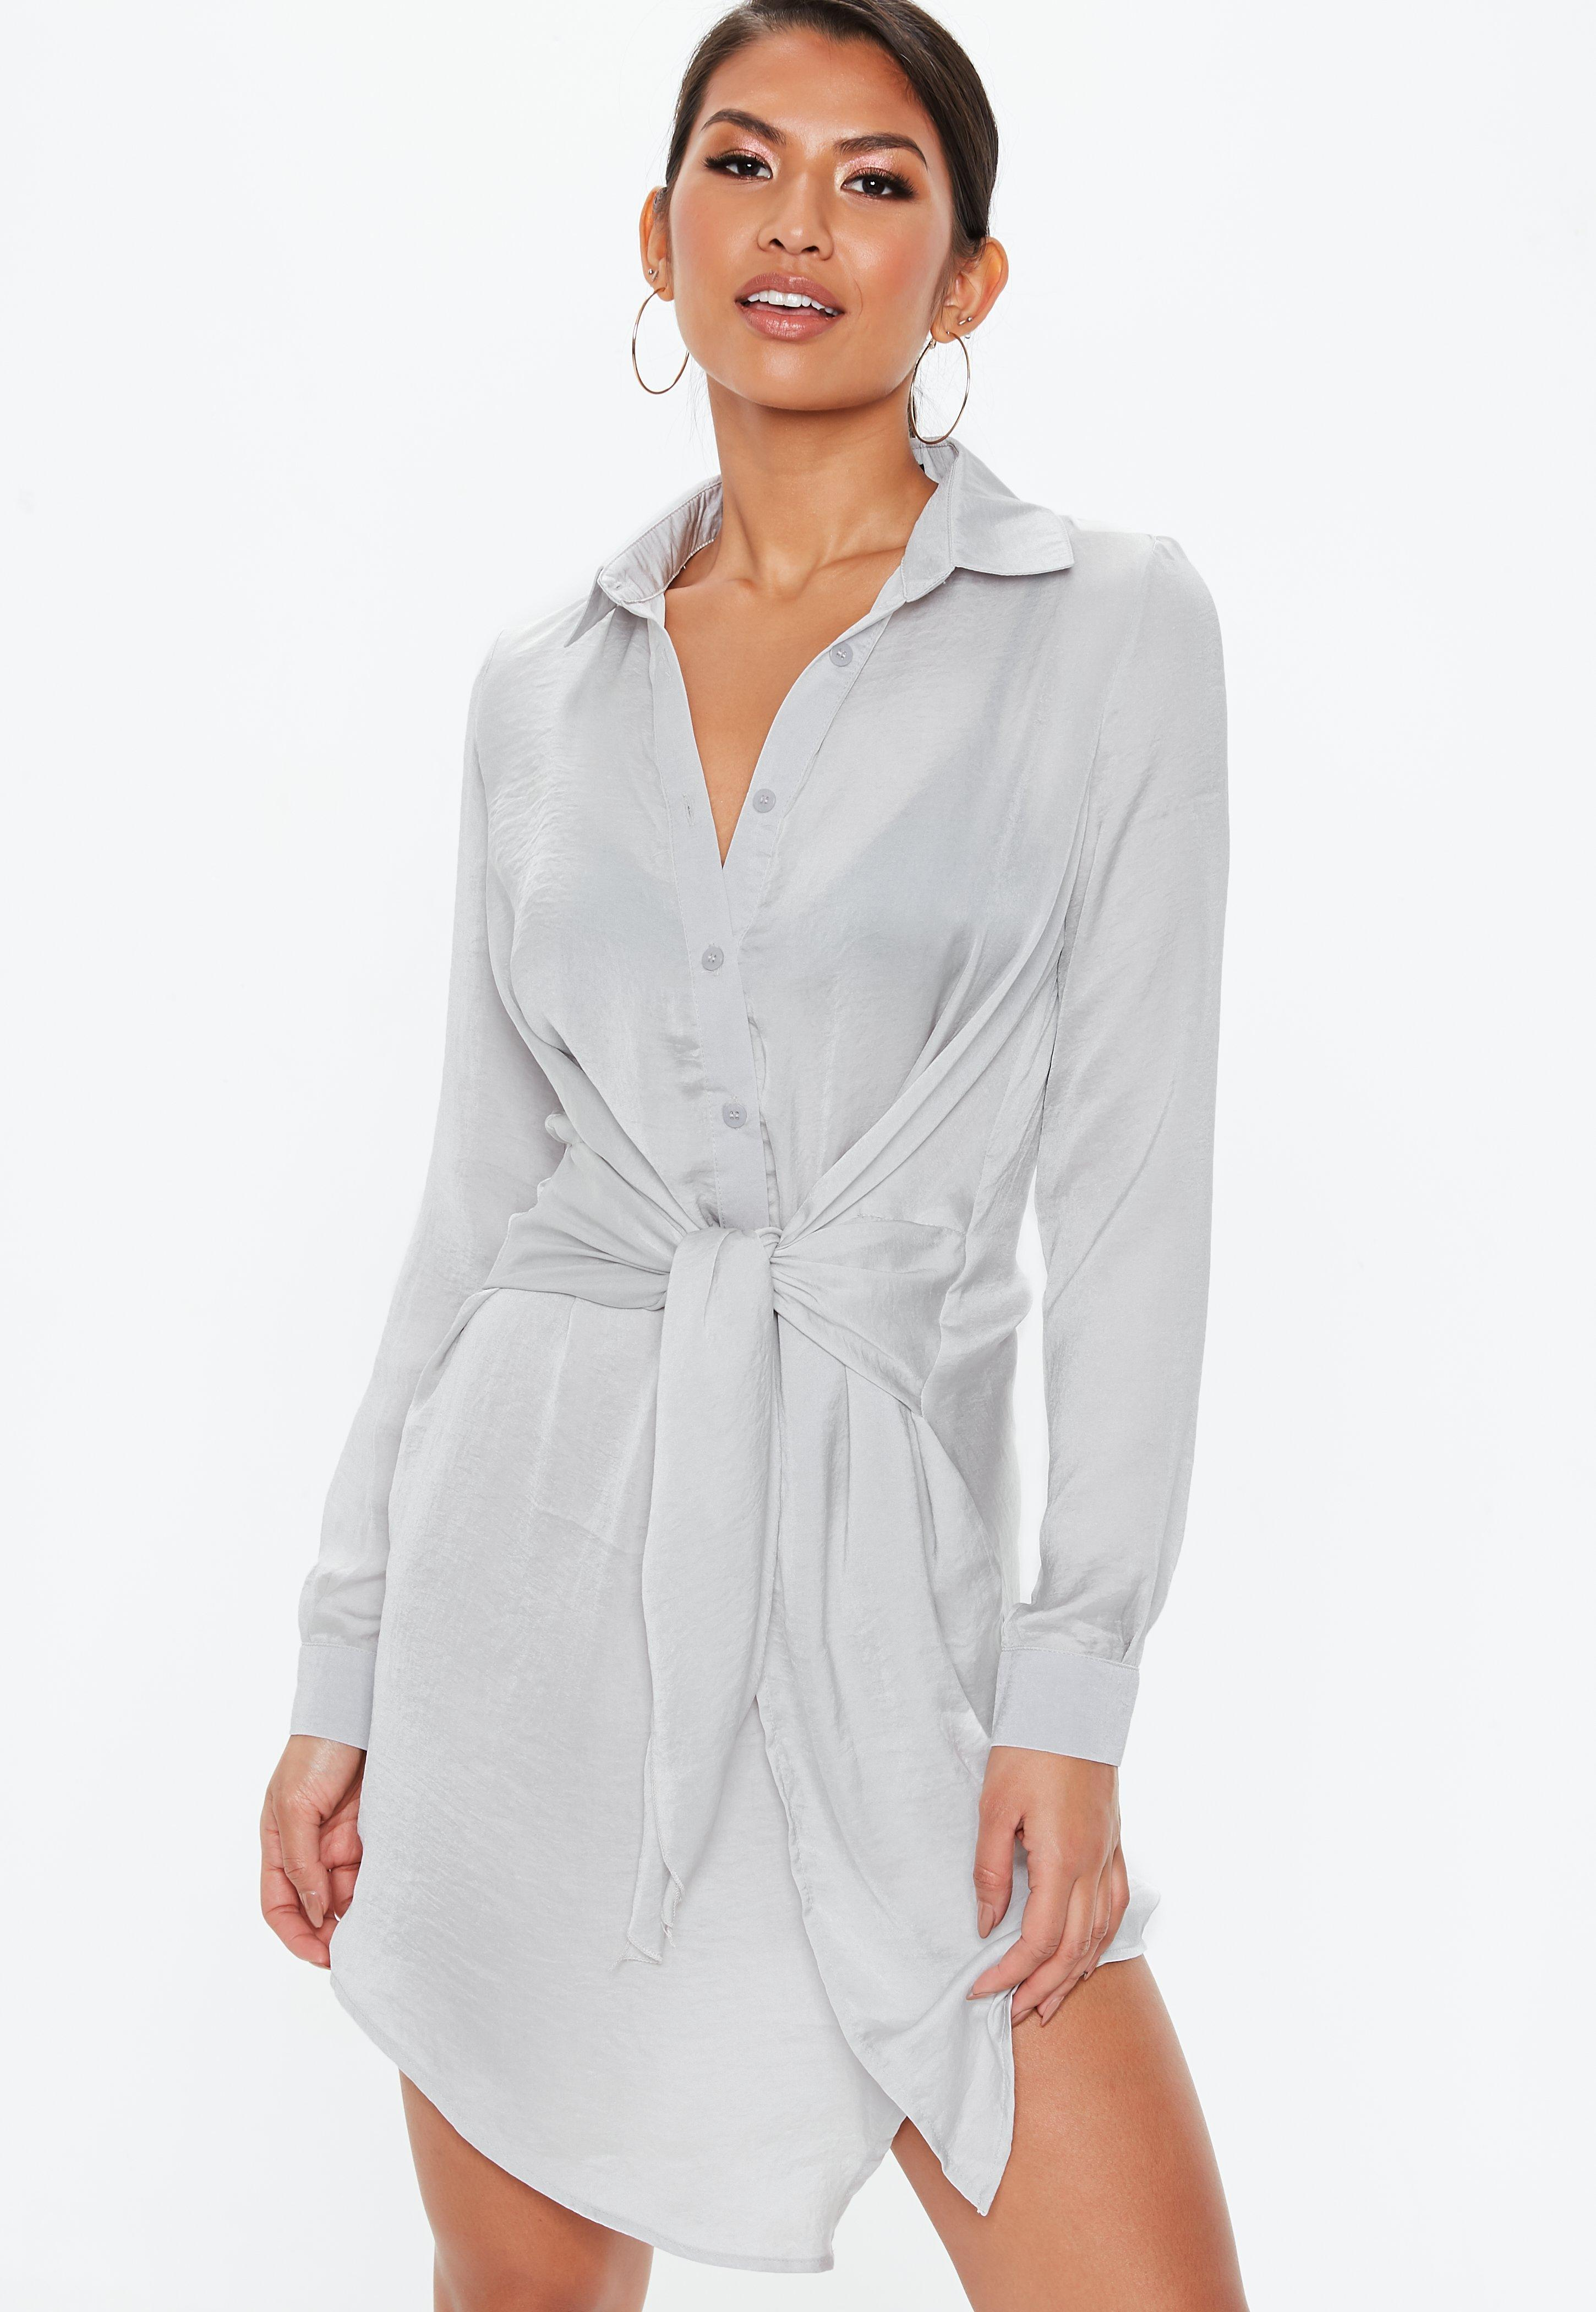 d2237711872 Lyst - Missguided Gray Tie Waist Shirt Dress in Gray - Save 8%